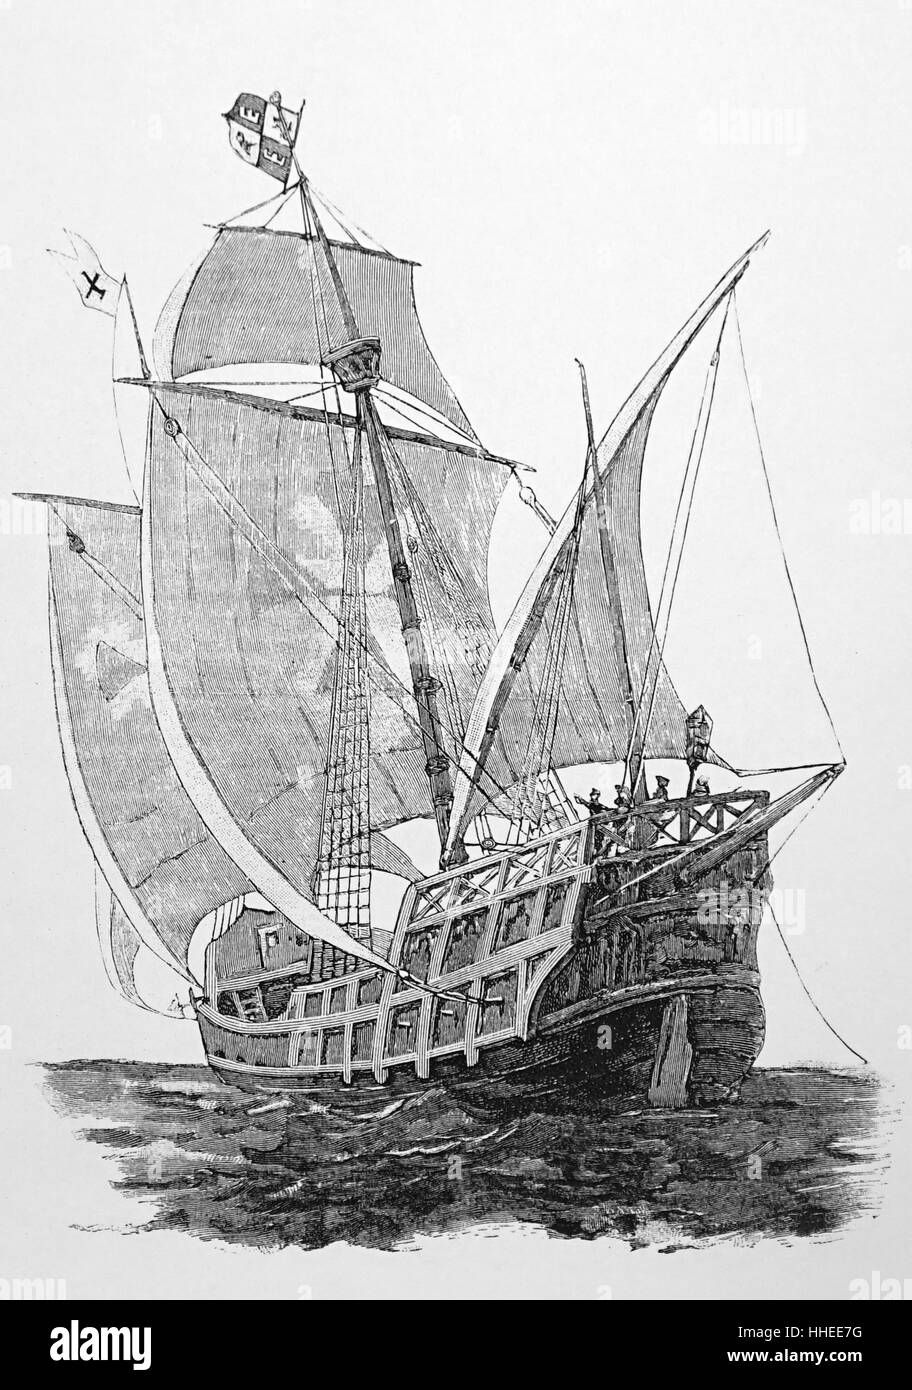 Engraving print of a Caravel - Stock Image